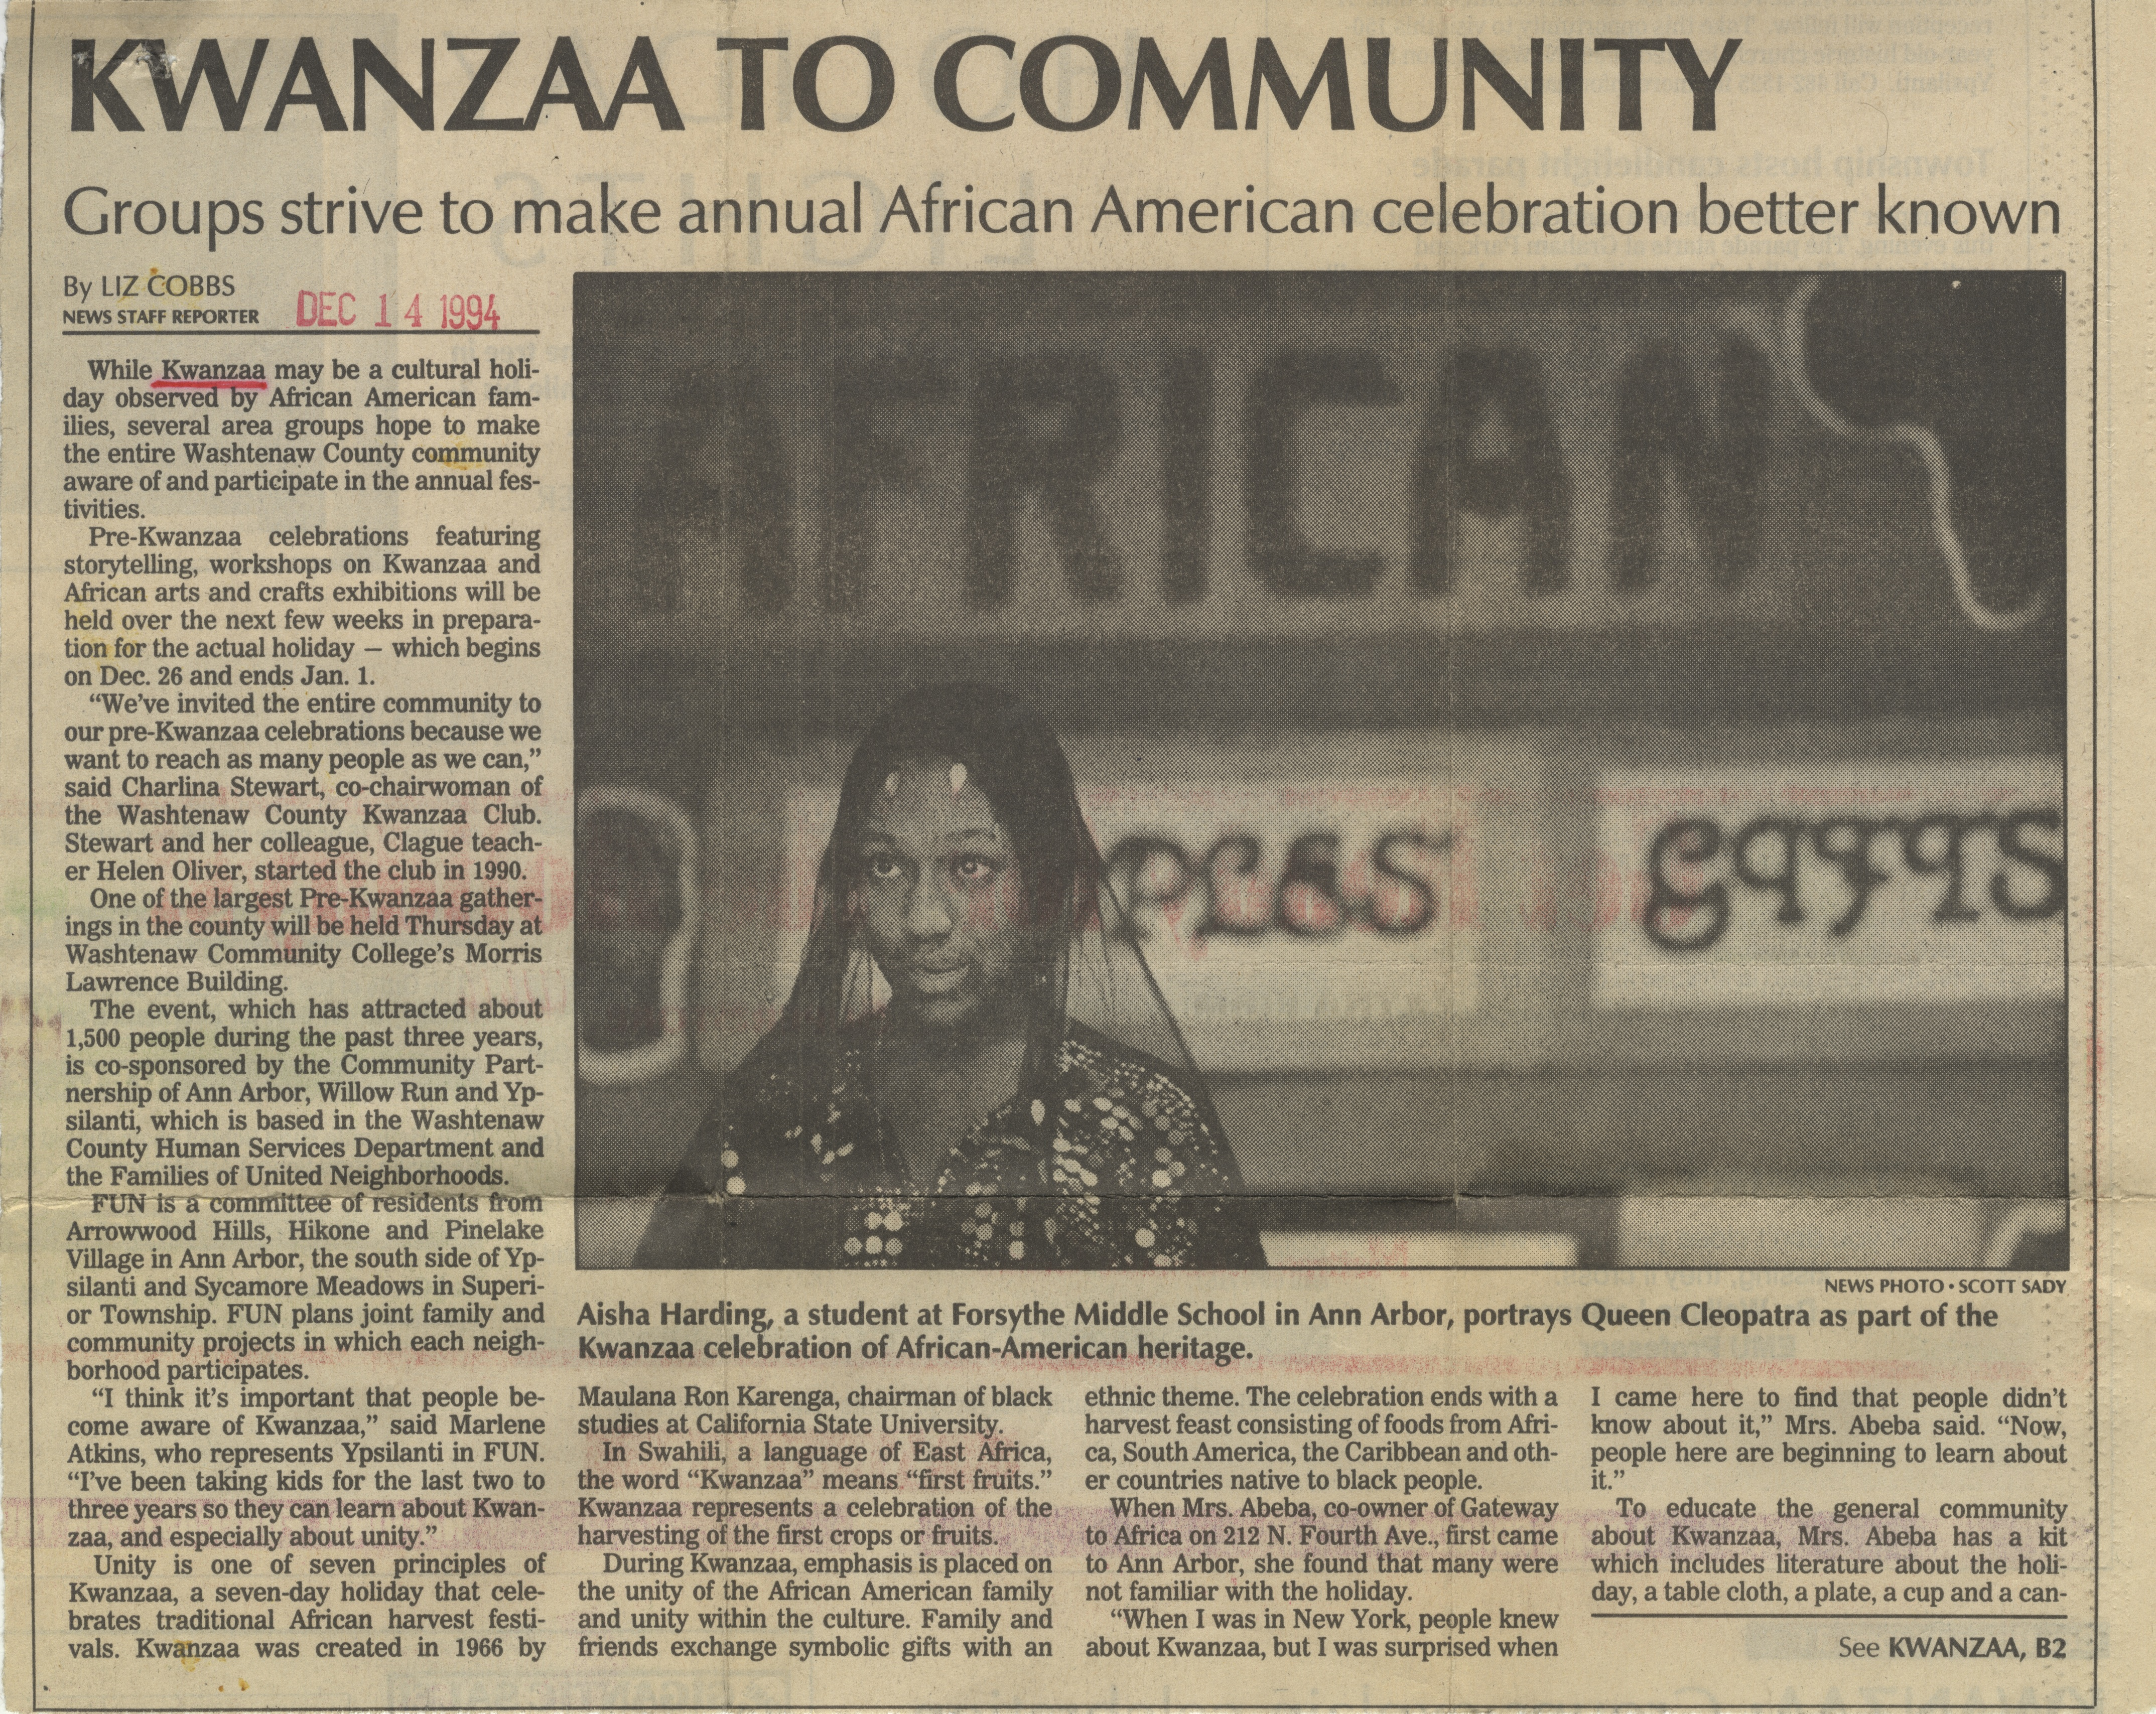 Kwanzaa To Community image